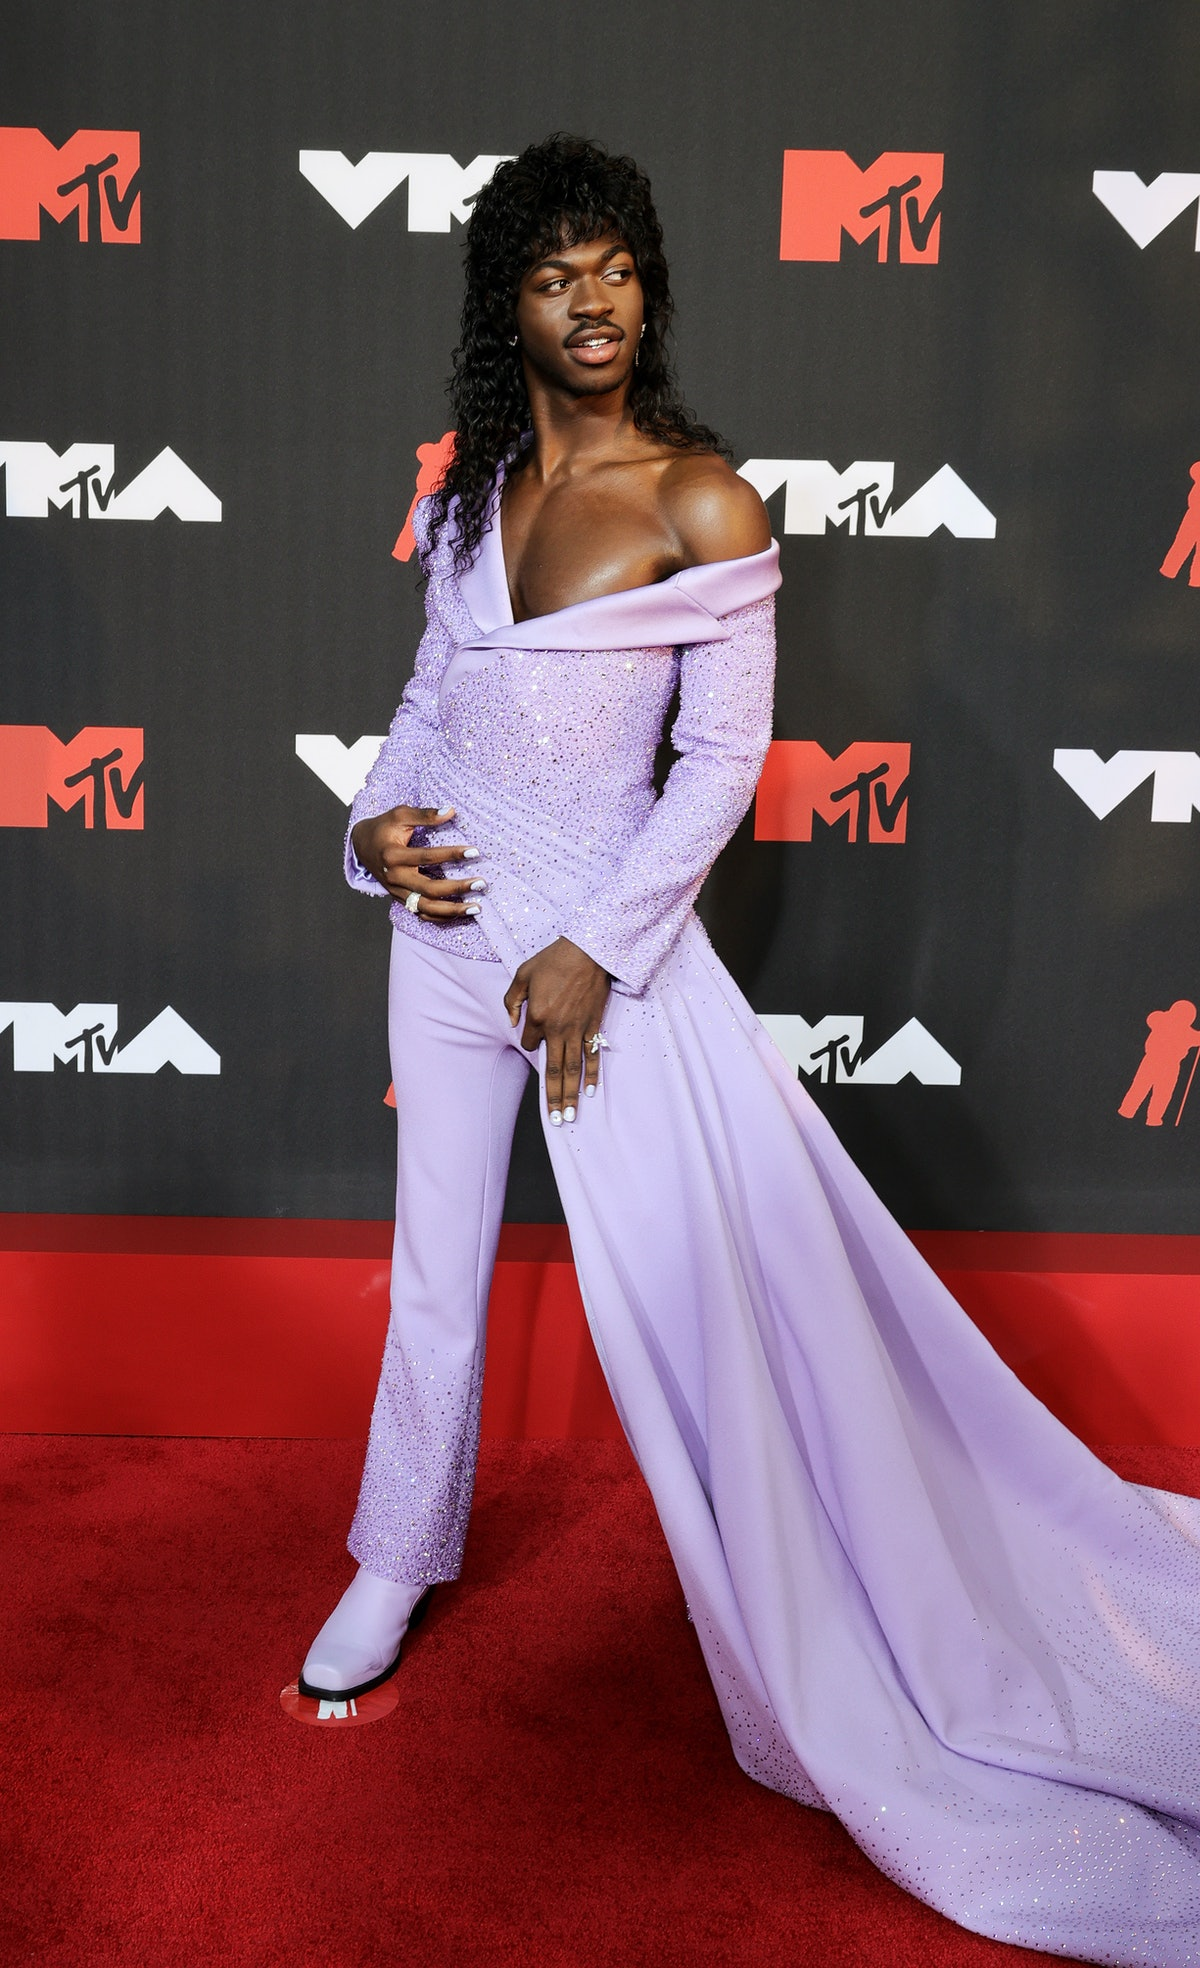 Lil Nas X attends the 2021 MTV Video Music Awards in a lavender suit-and-dress combo and curly mulle...